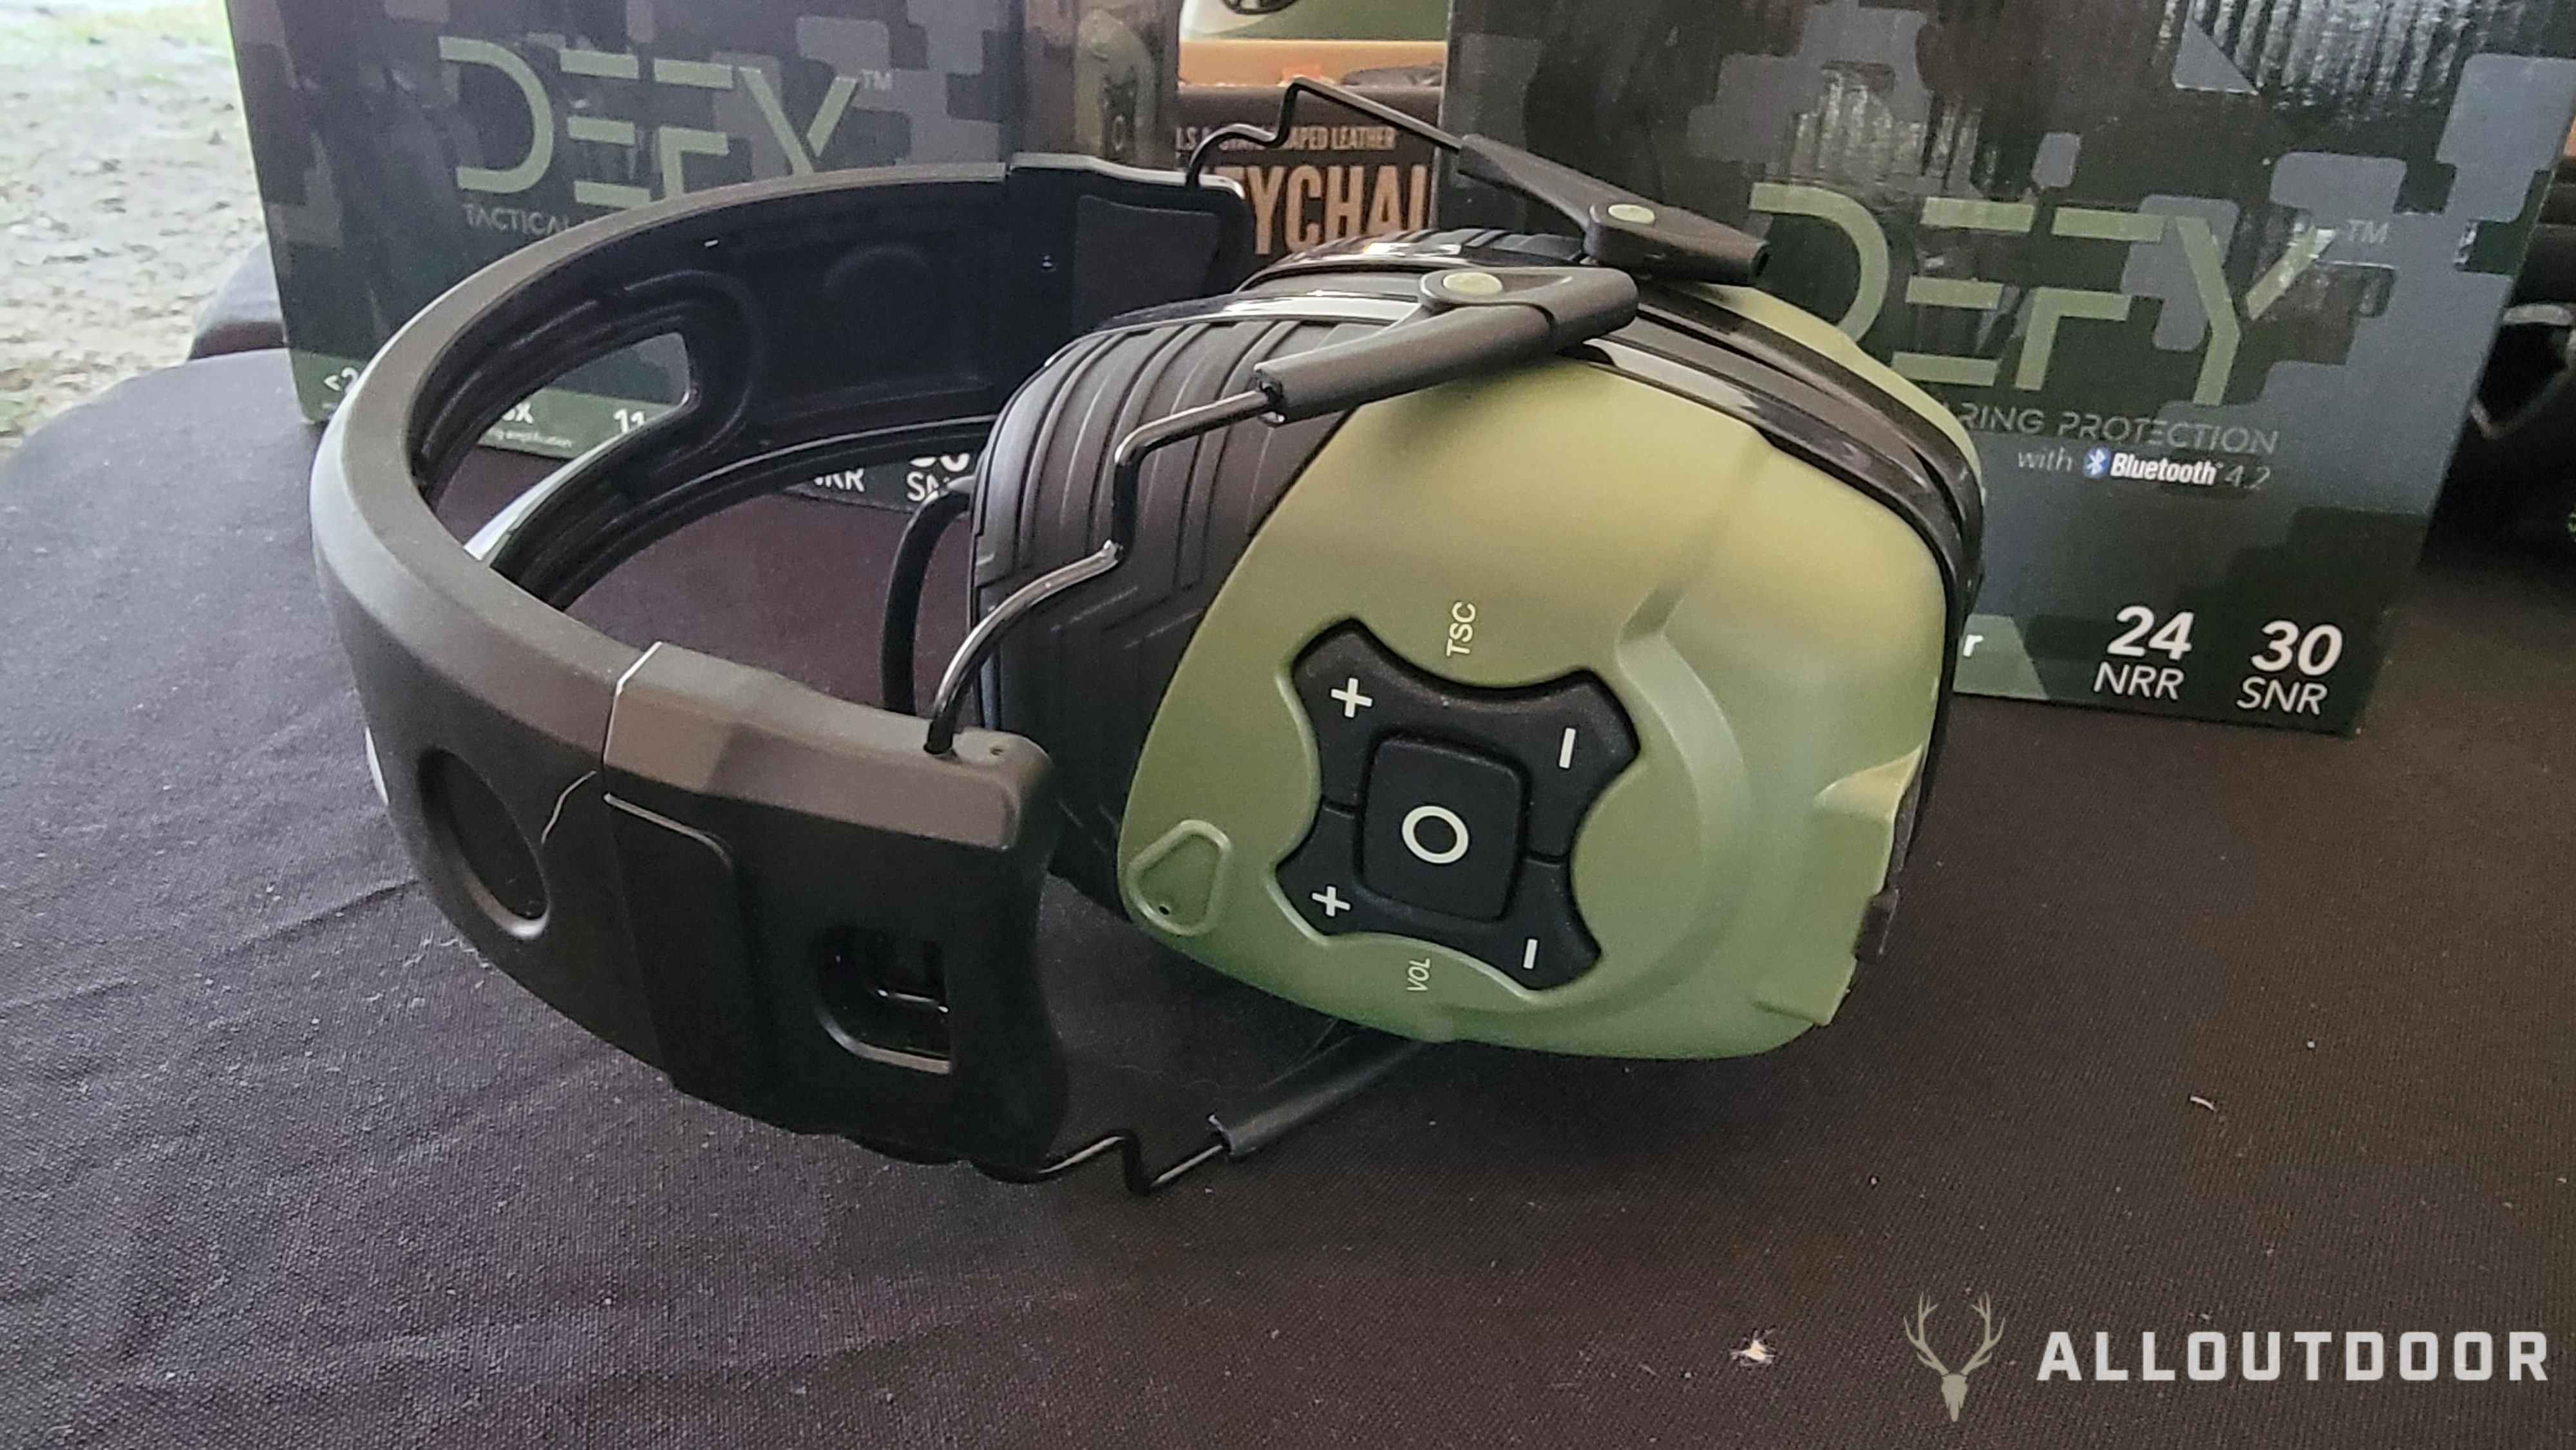 New DEFY Hearing Enhancing Earmuffs from ISO Tunes